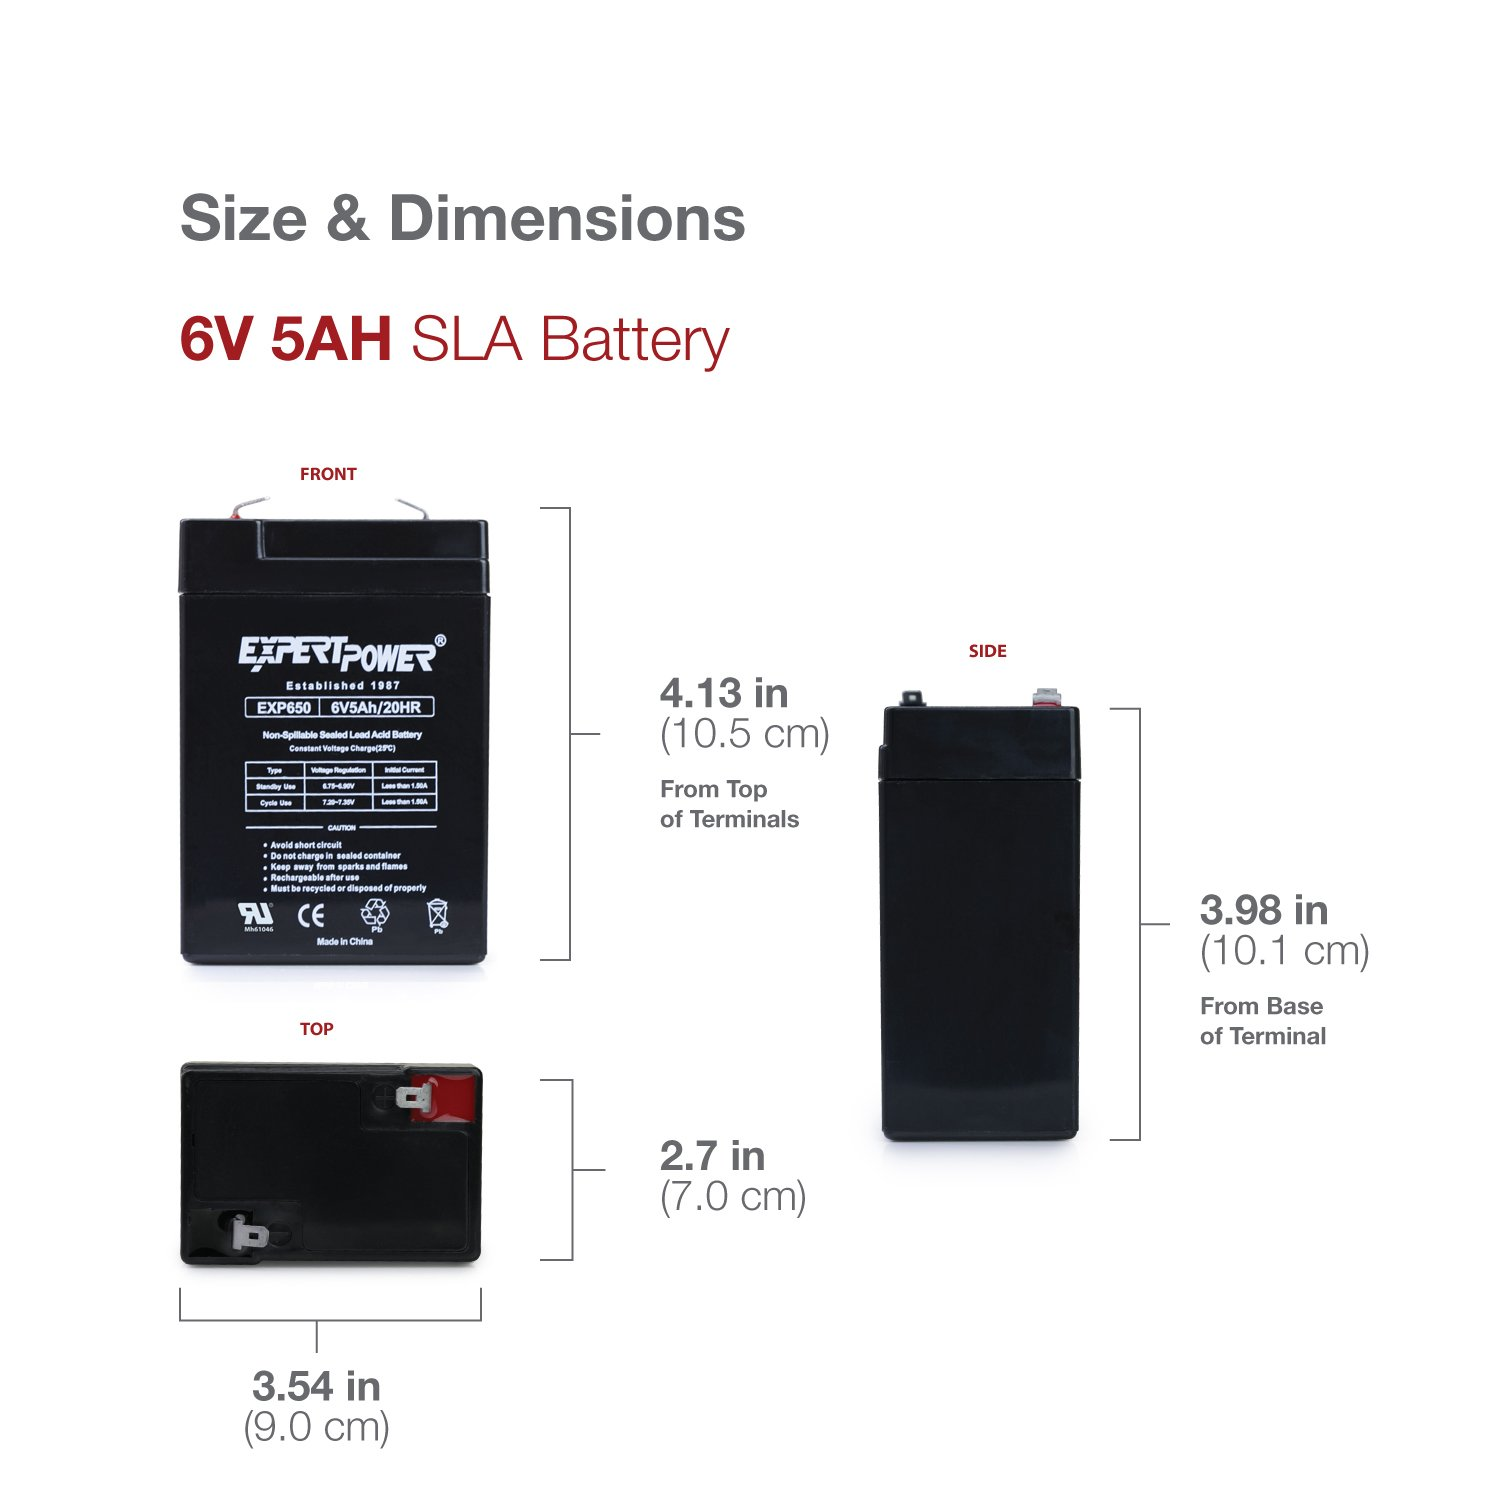 6v 5ah Sla Rechargeable Battery Electronics For Power Supply We Can Use Batteries Or Regulated